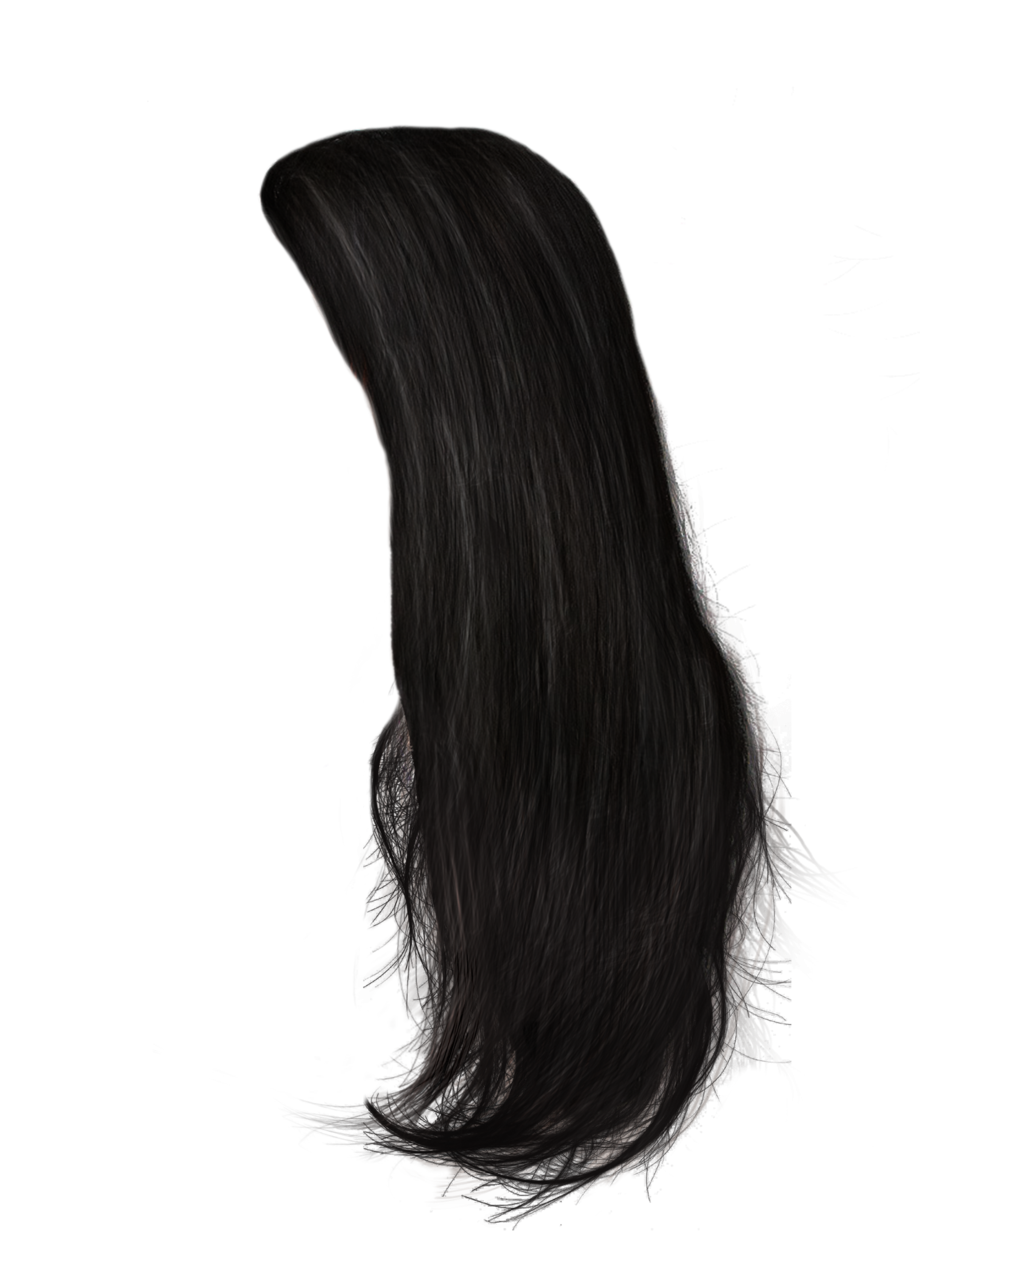 Hair woman png. Image web icons download